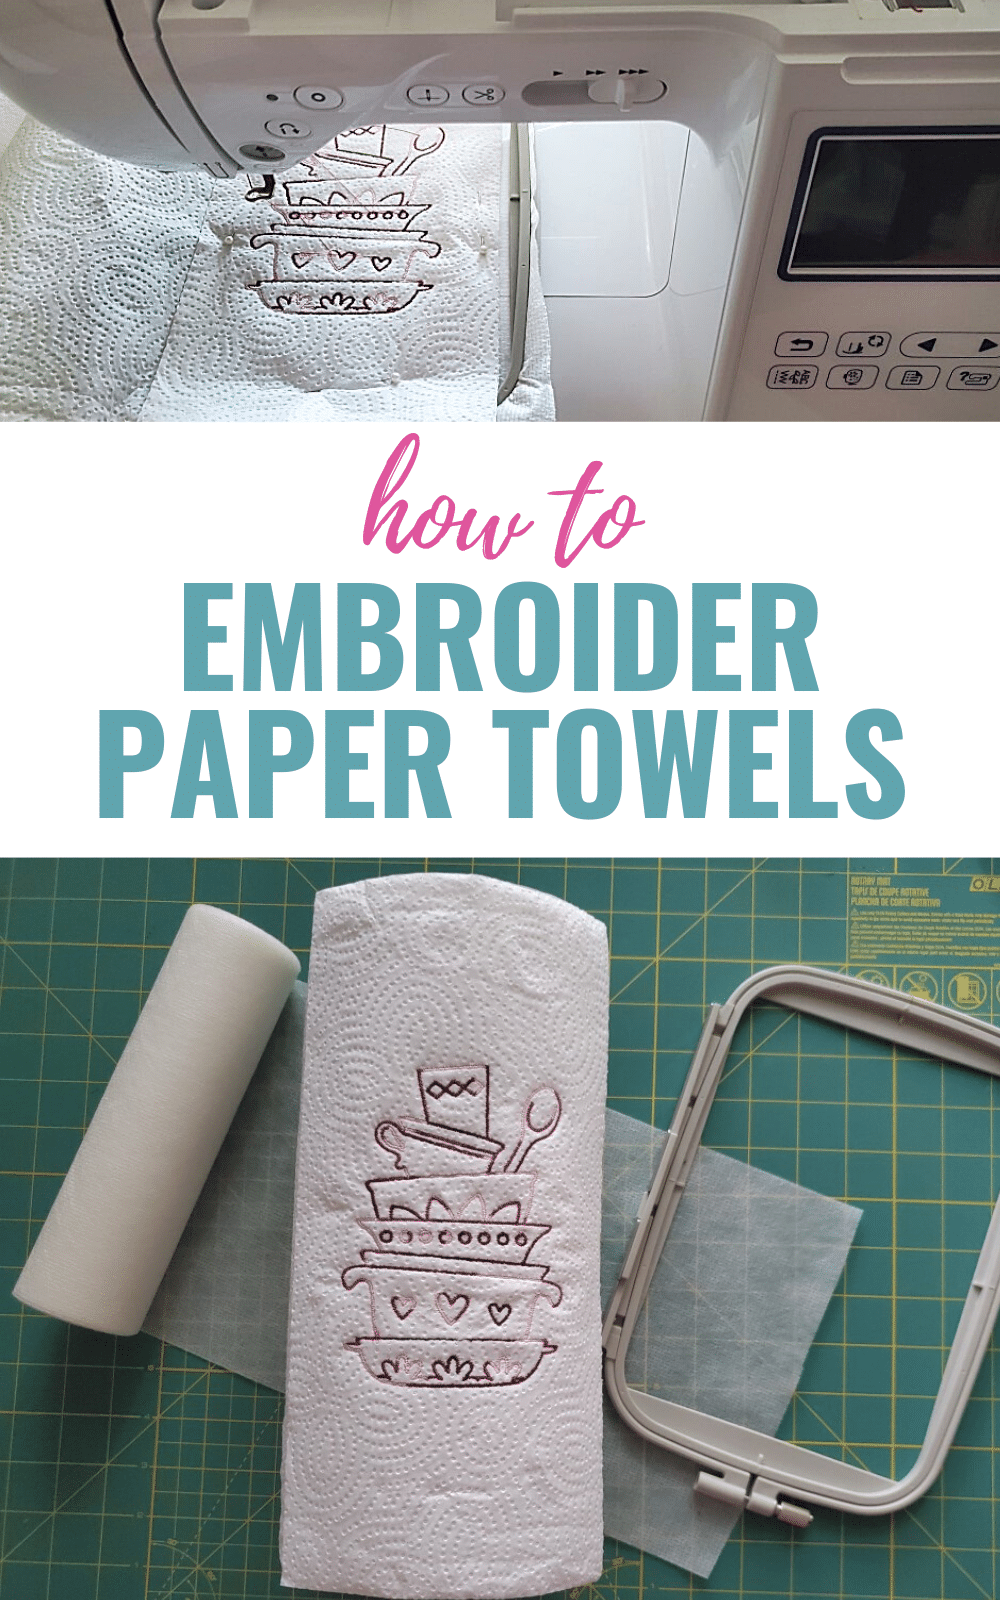 Embroider paper towels